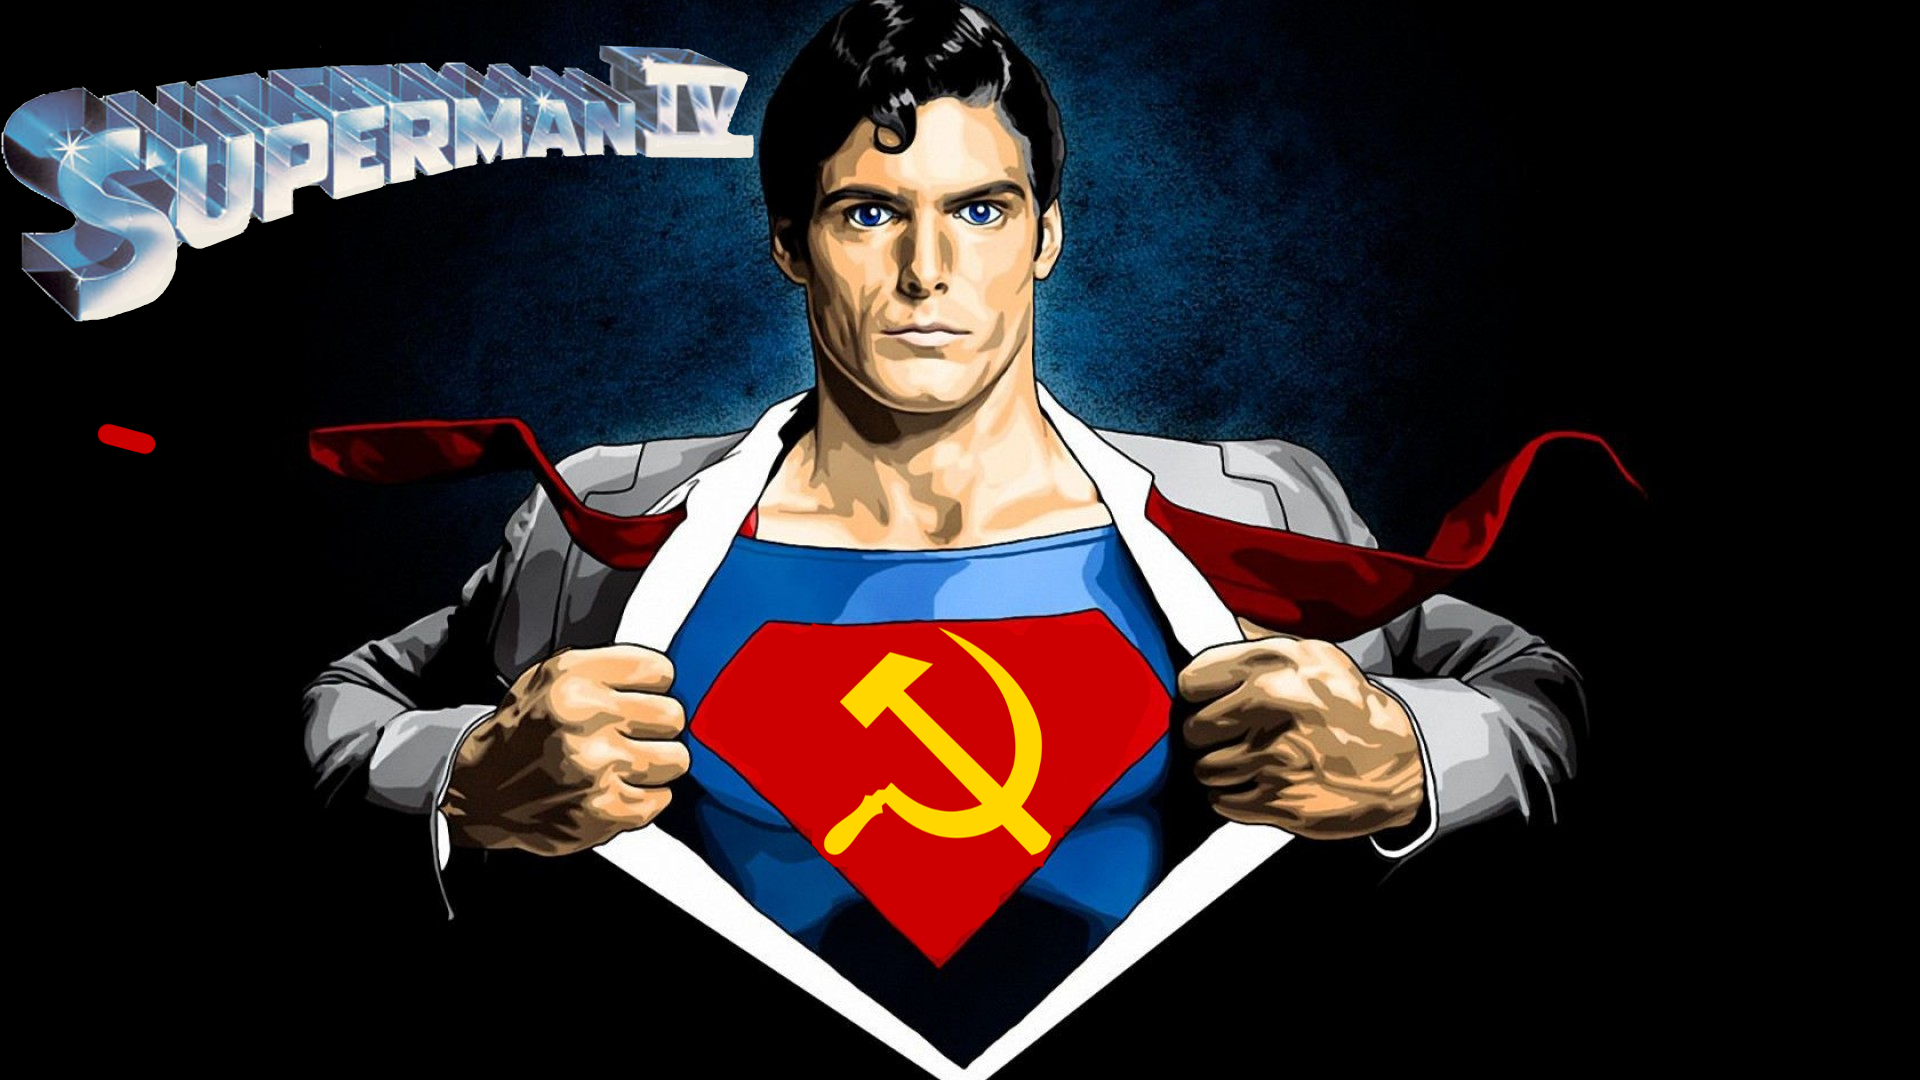 SupermanIV_communist